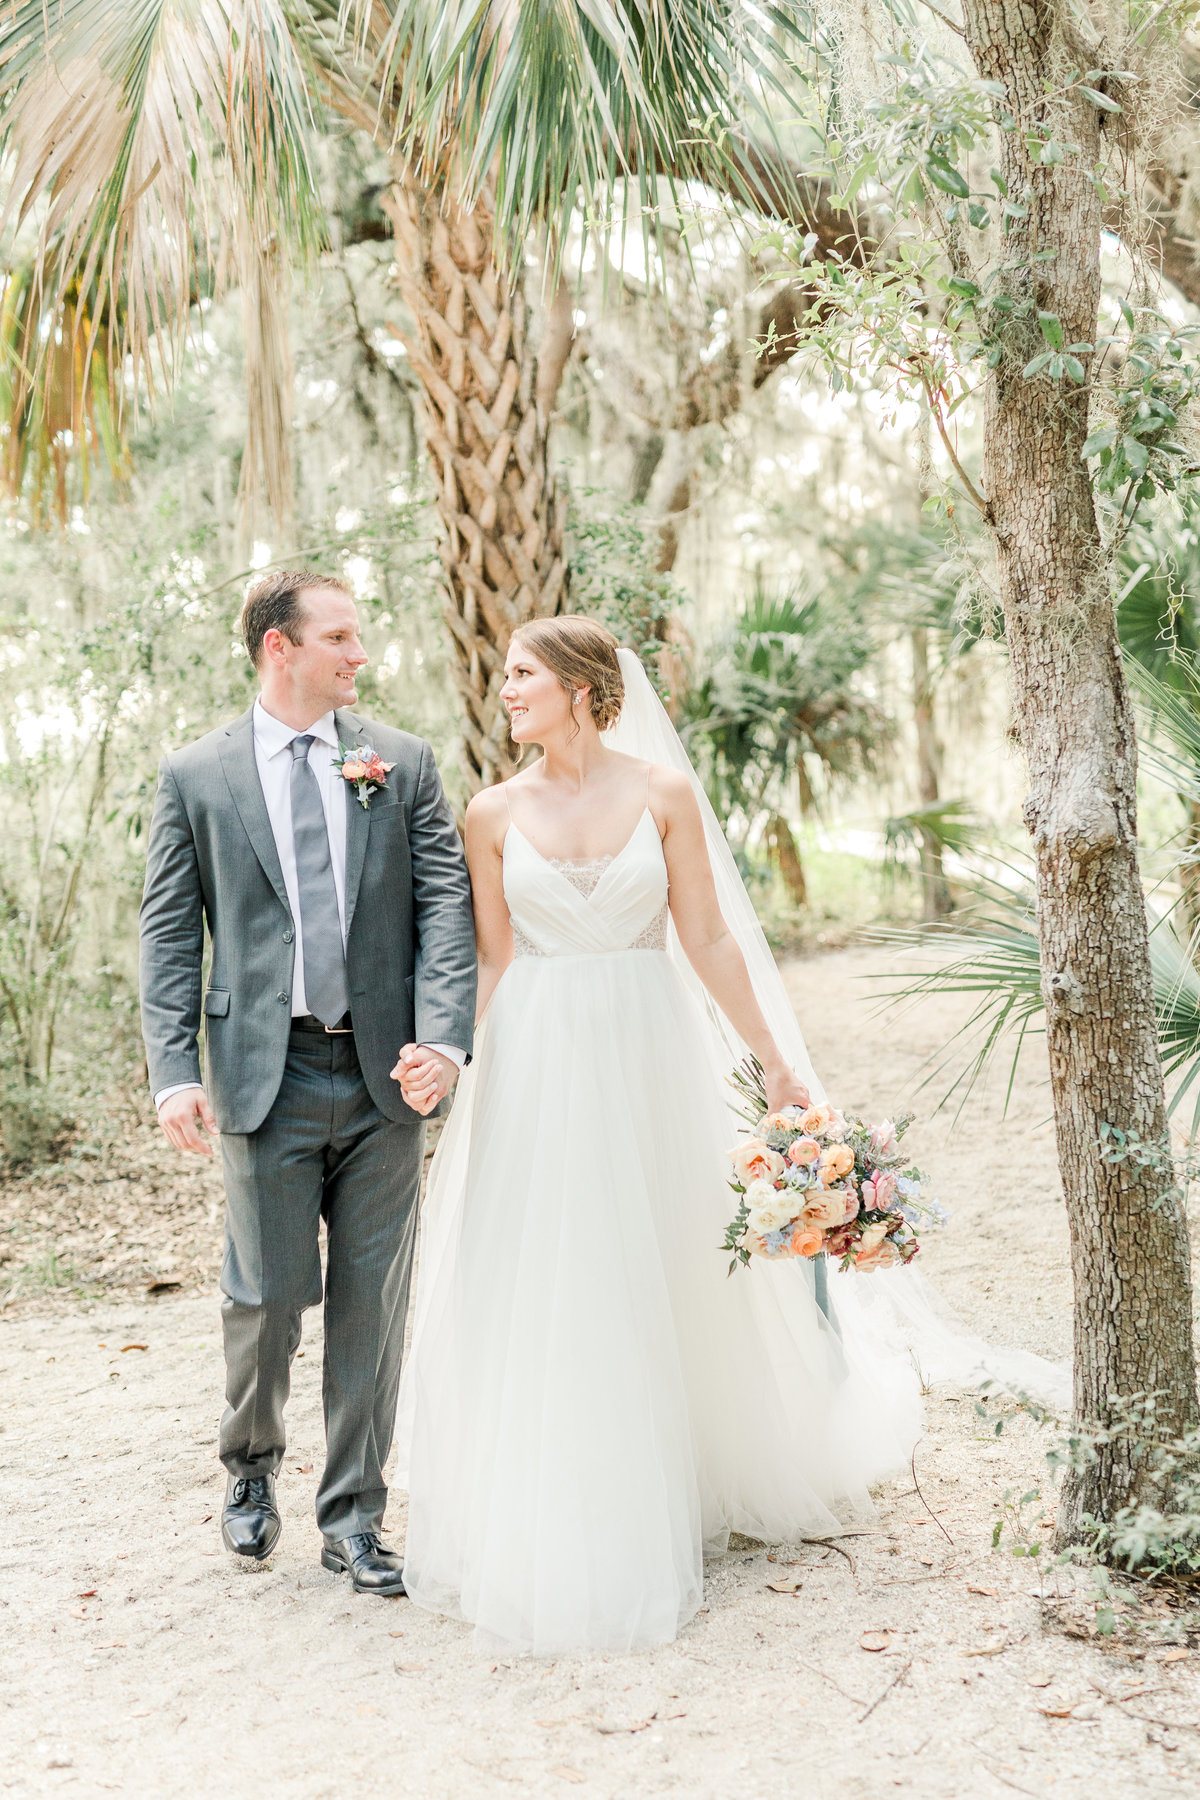 Walkerslandingameliaislandwedding-7125